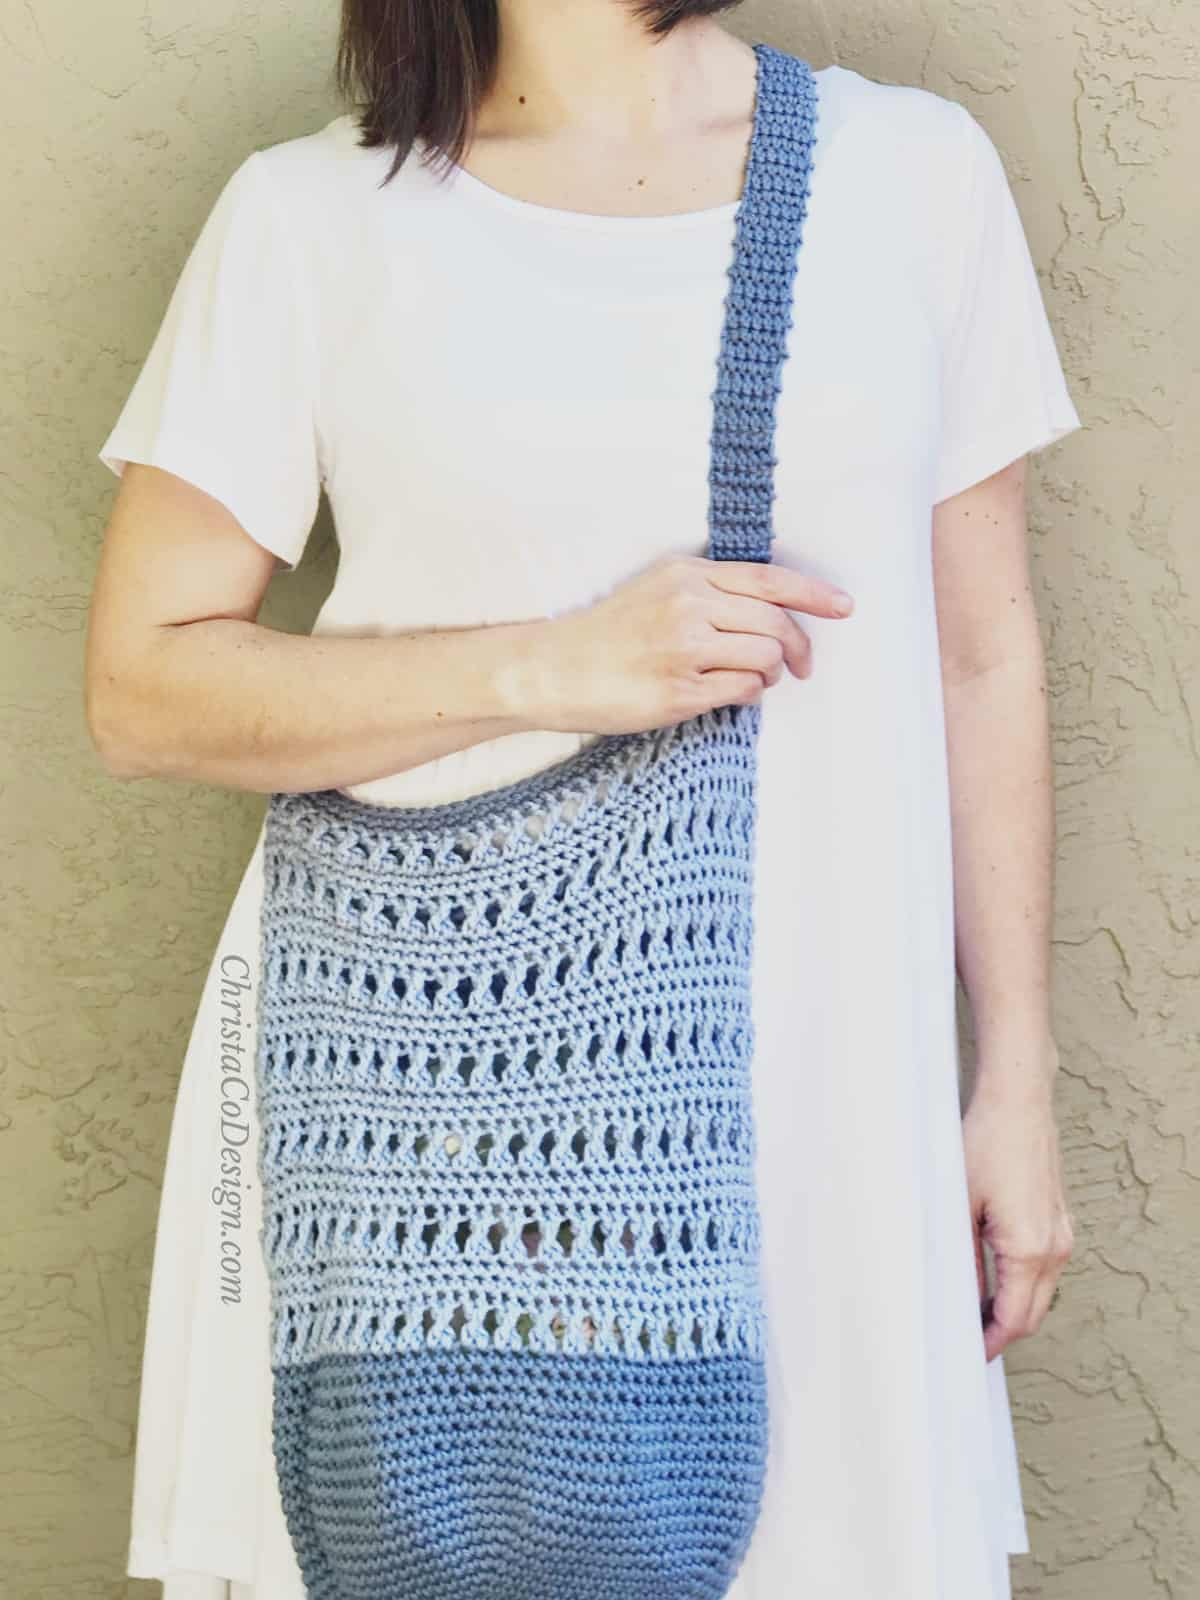 picture of woman with blue crochet shoulder bag on